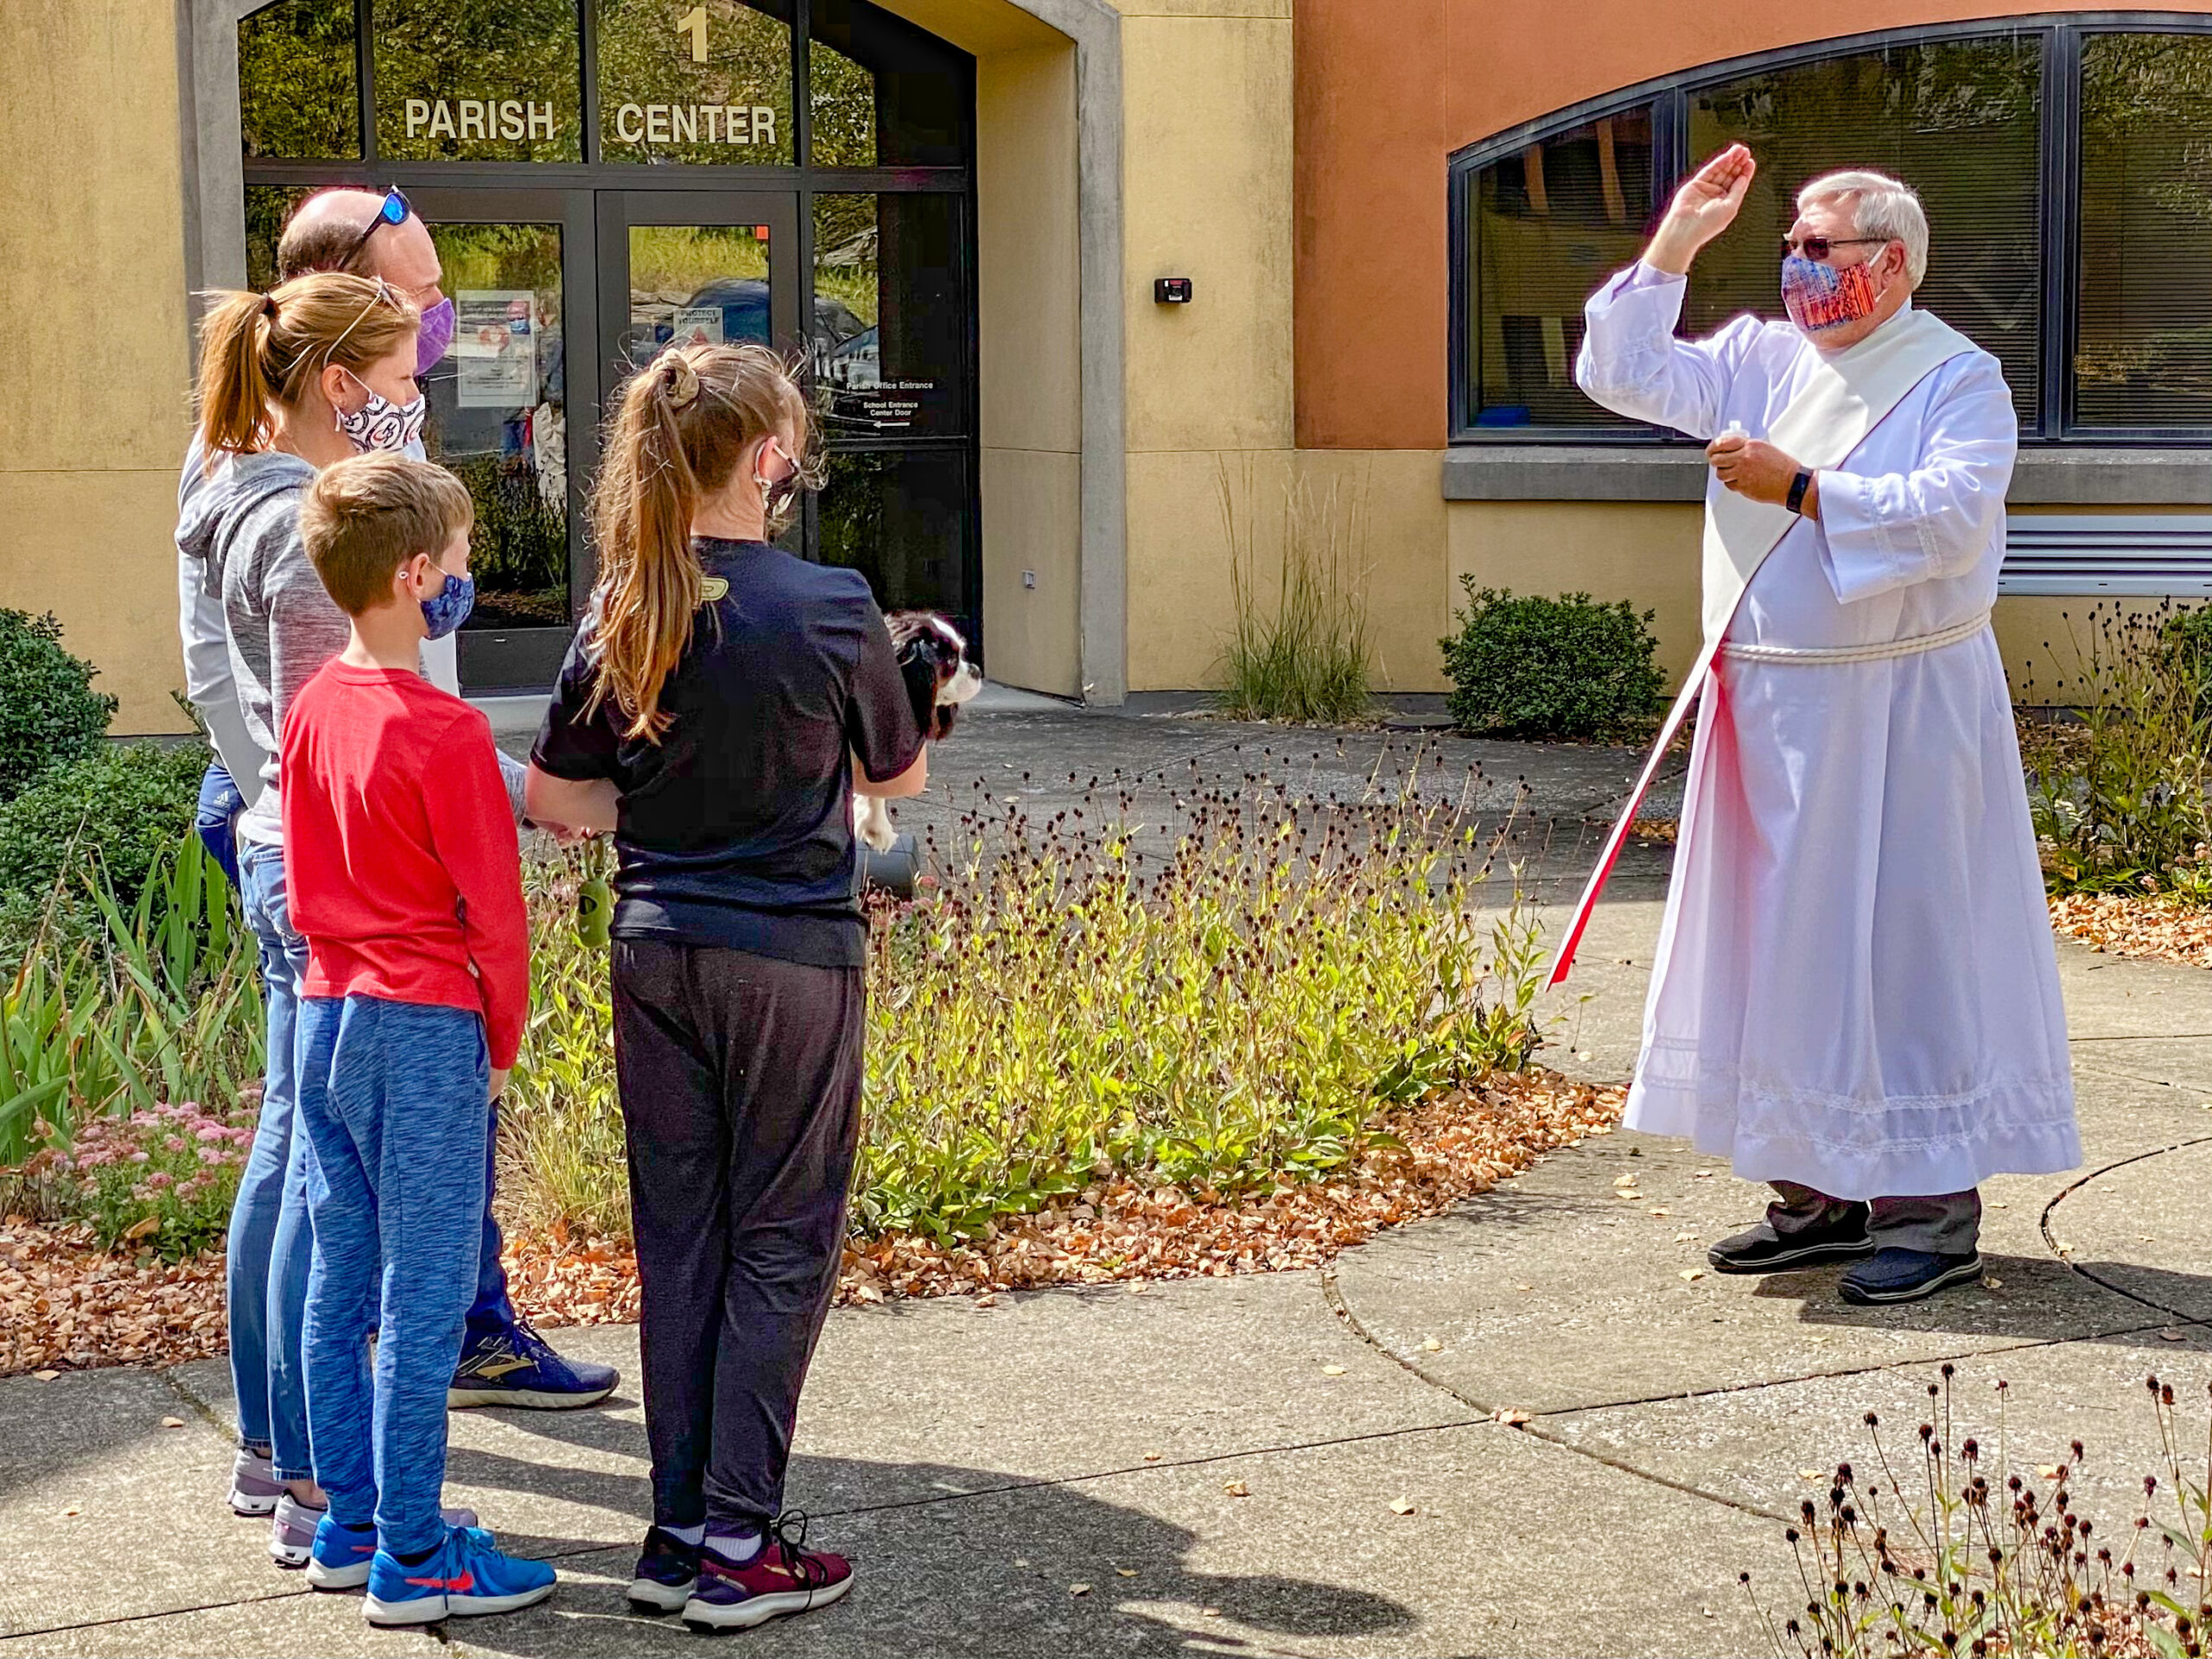 Deacon Tom Cervone of Evansville's Holy Redeemer Parish blesses animals outside the parish center on Oct. 3, the day before the Feast of St. Francis of Assisi. Deacon Tom blessed seven dogs and two cats. Submitted photo